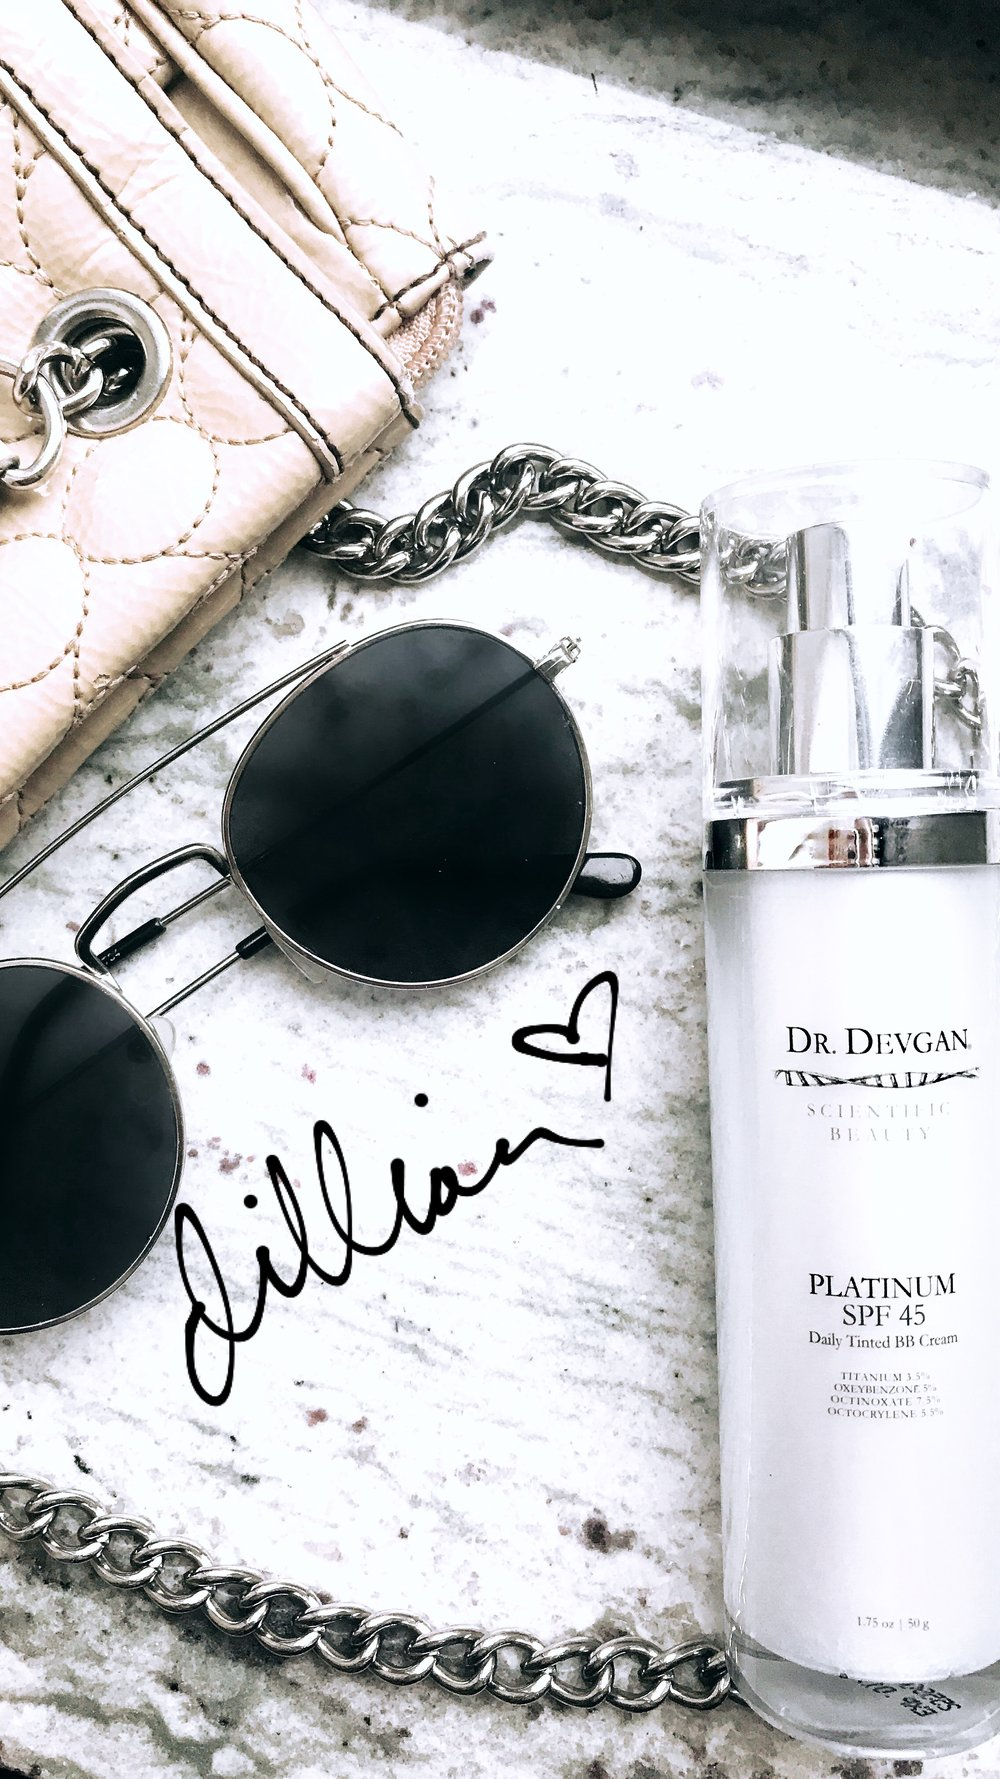 Dr. Devgan's Scientific Beauty Platinum SPF 45 Daily Tinted BB Cream